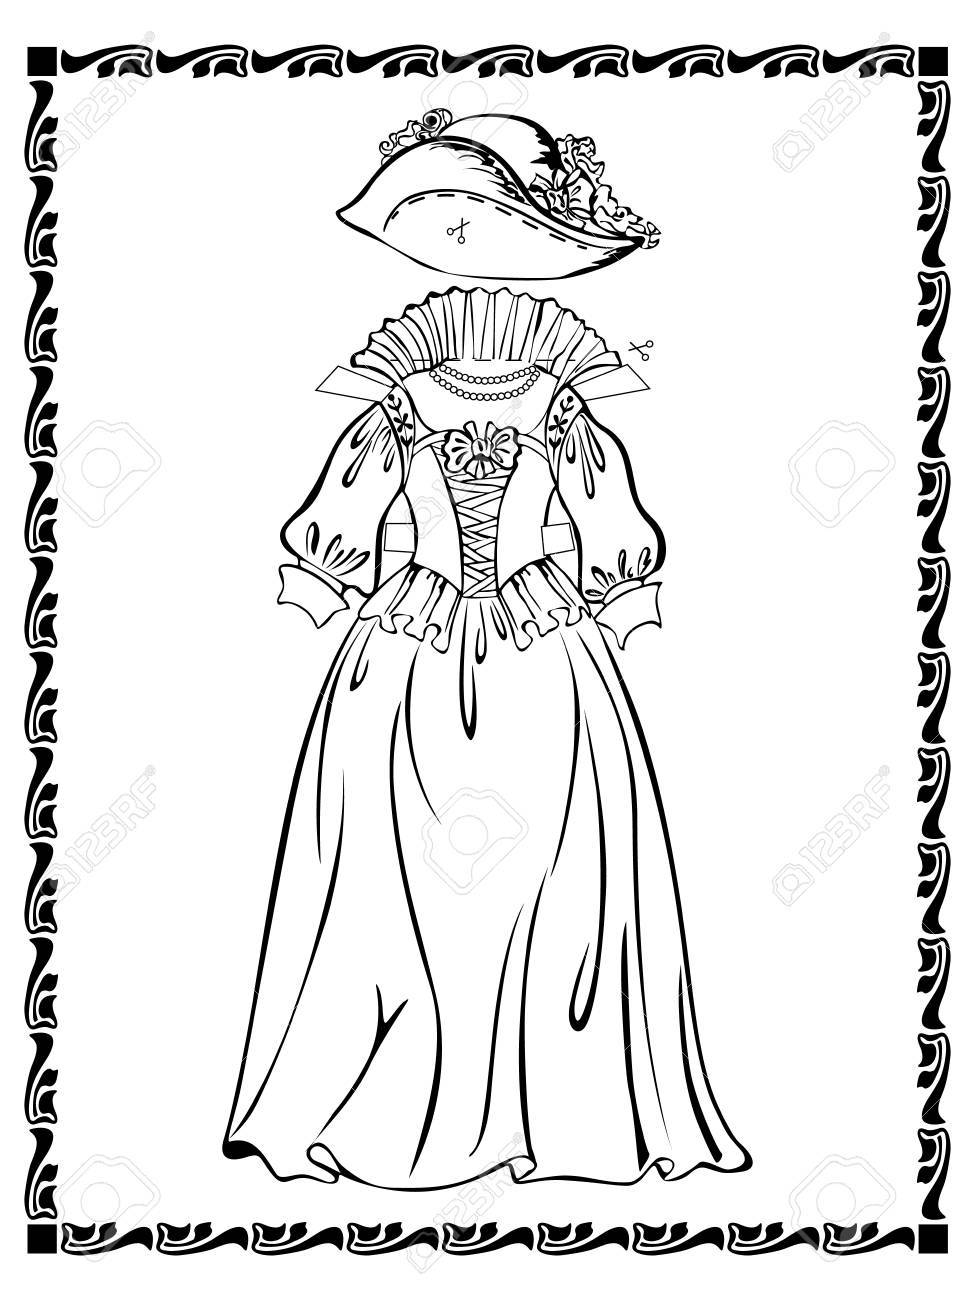 Vintage outfit lady dress with the basques and hat. See other vintage outfits and doll in my portfolio Stock Vector - 15222468